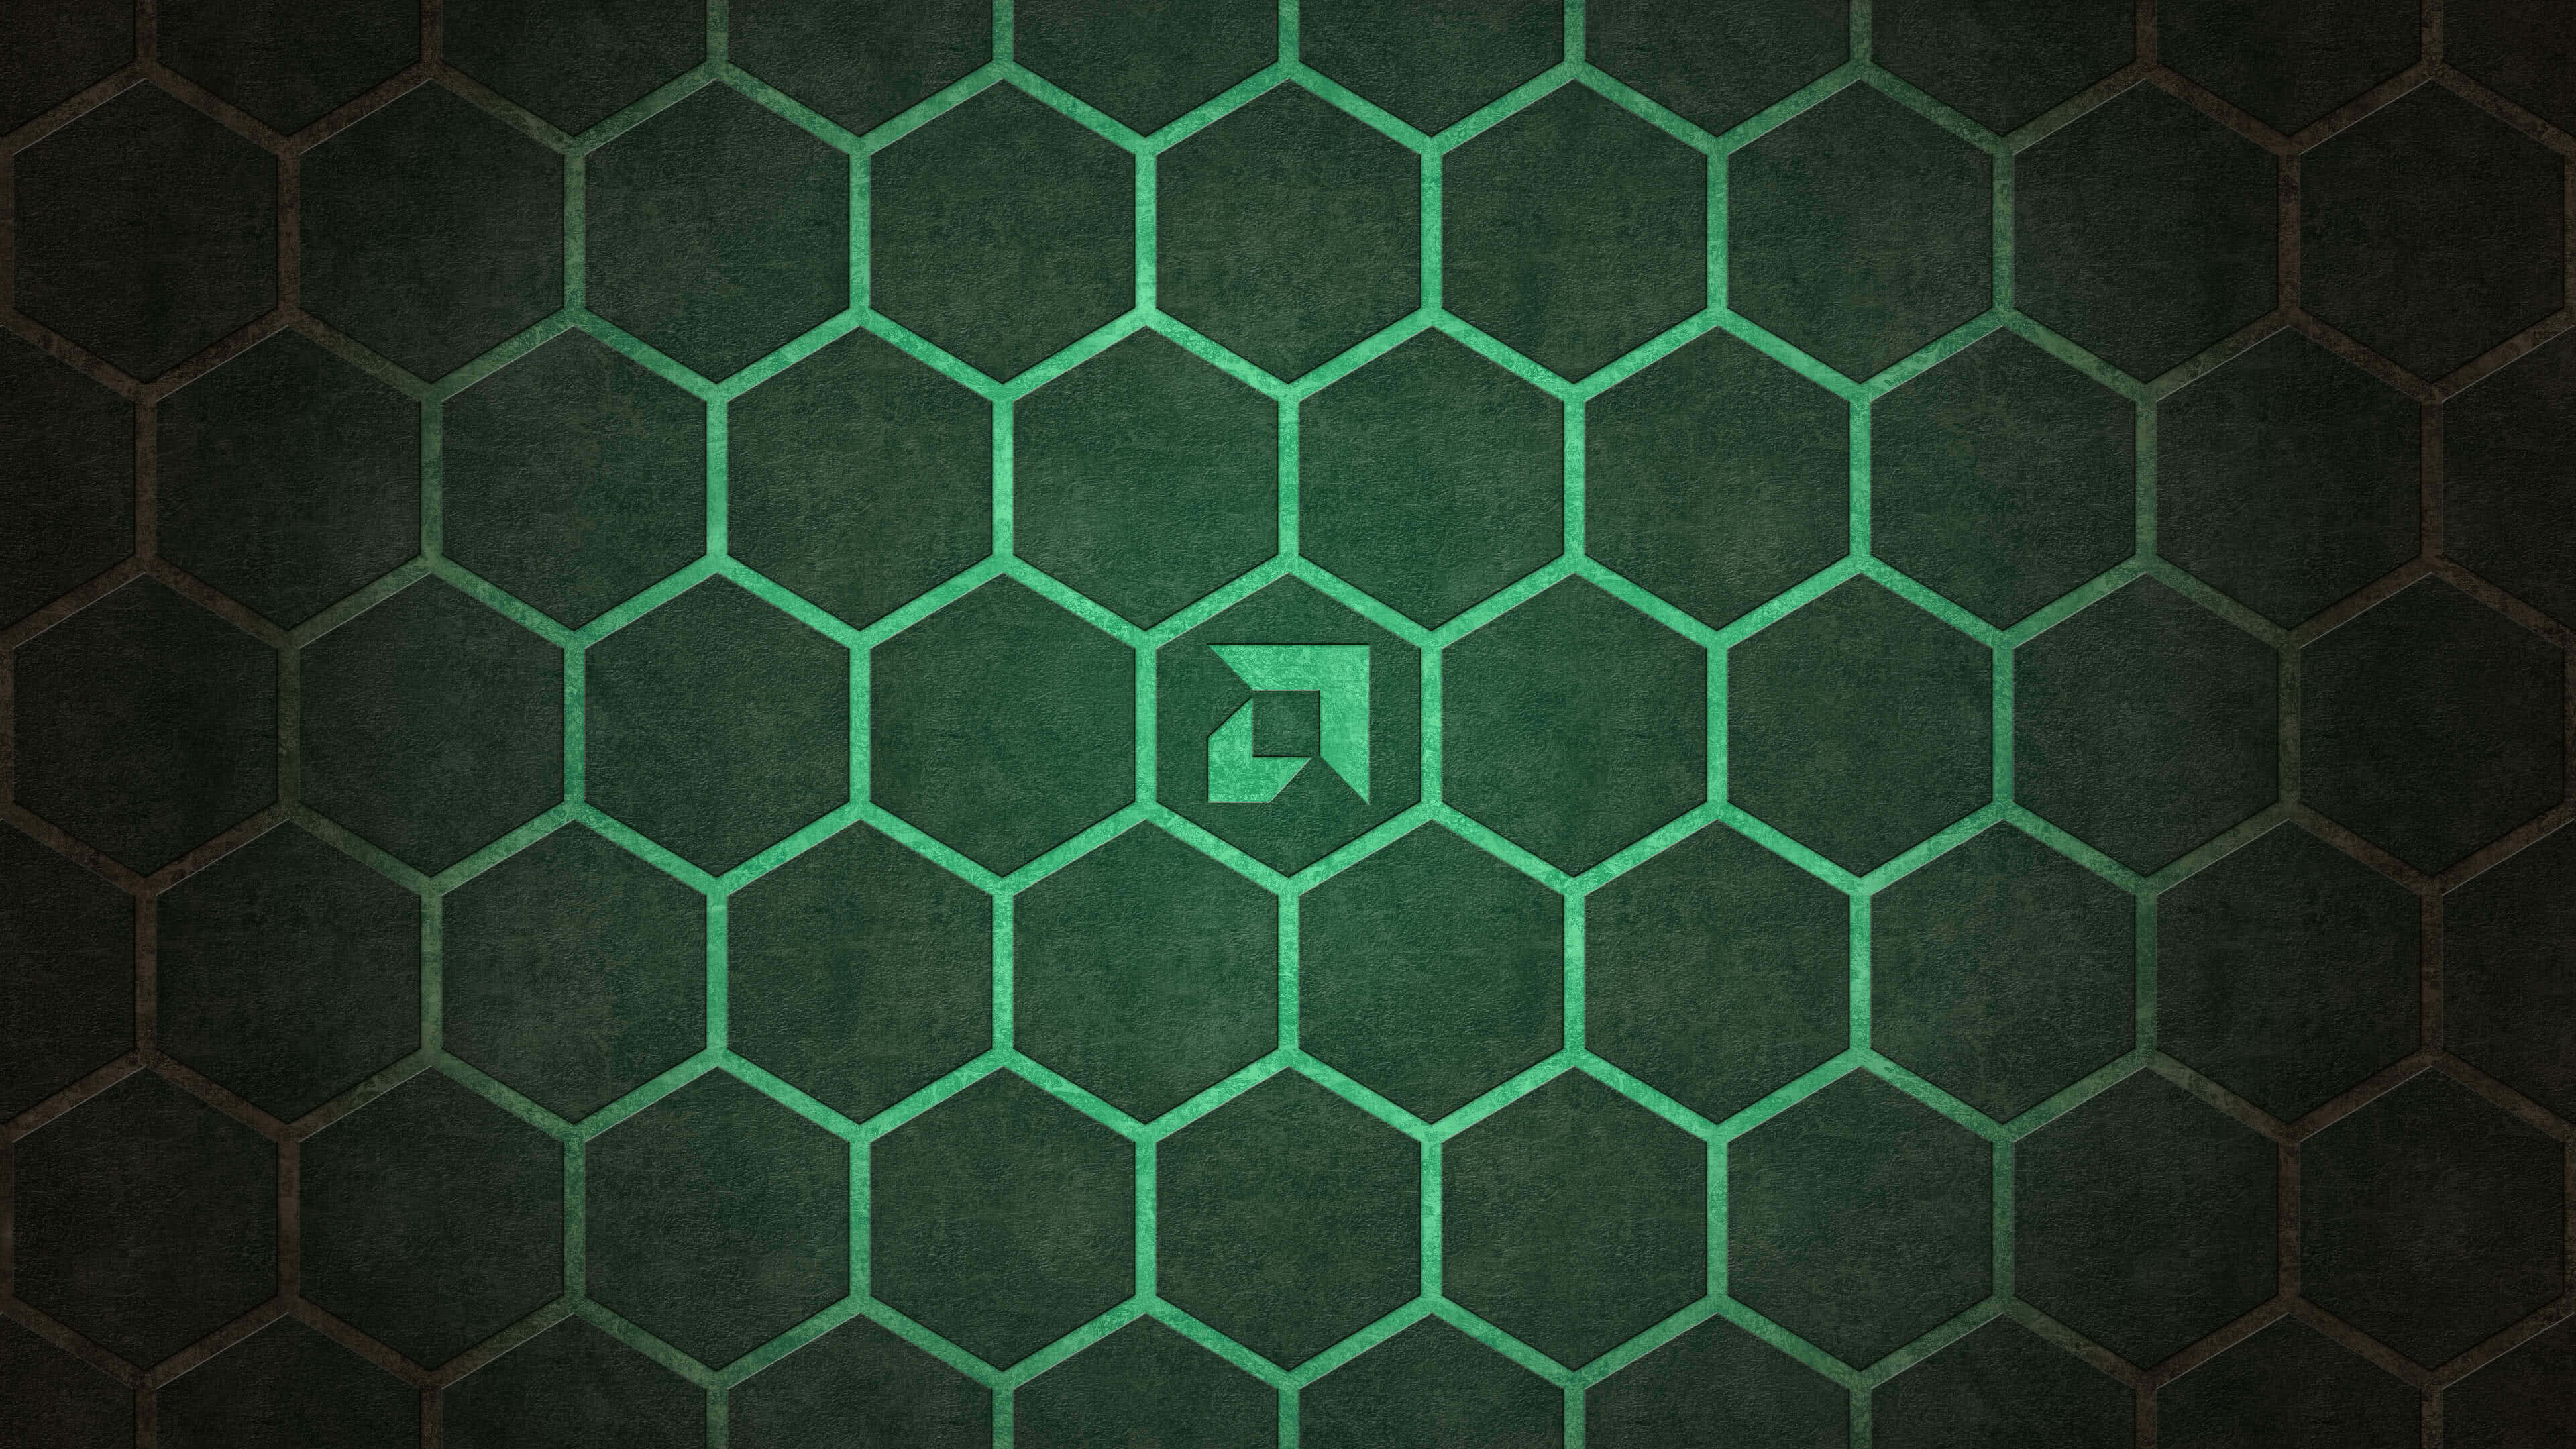 Res: 3840x2160, amd hexagon background uhd 4k wallpaper